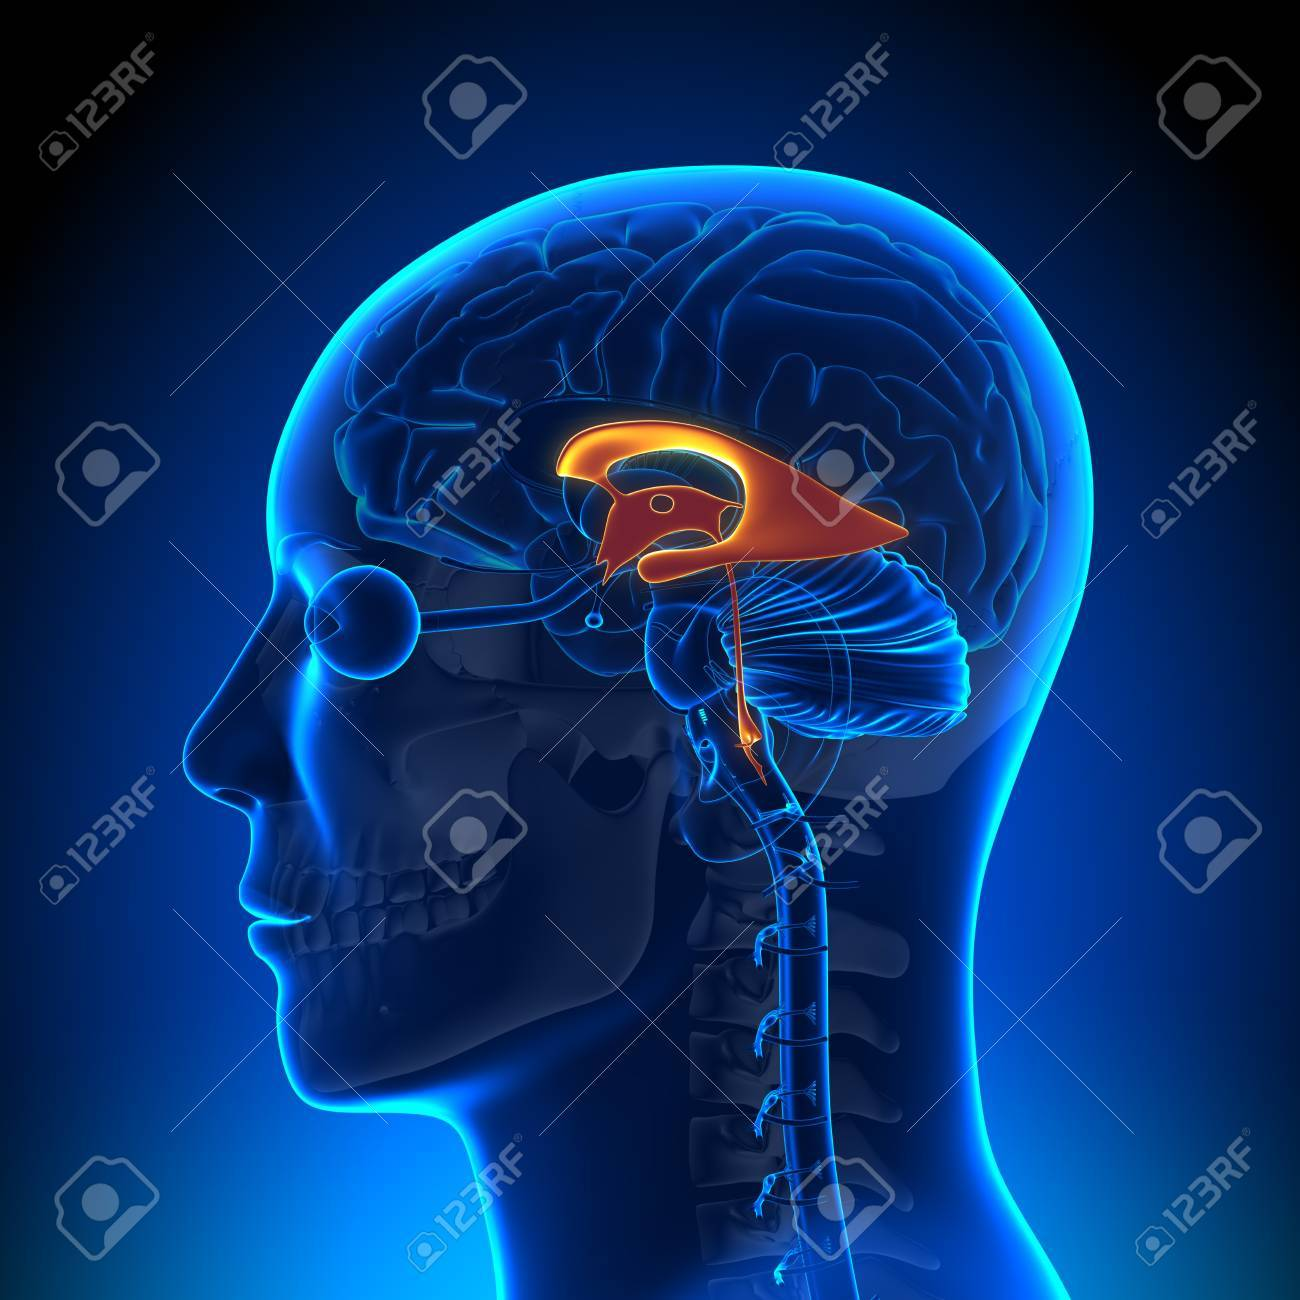 Brain Anatomy Ventricles Stock Photo Picture And Royalty Free Image